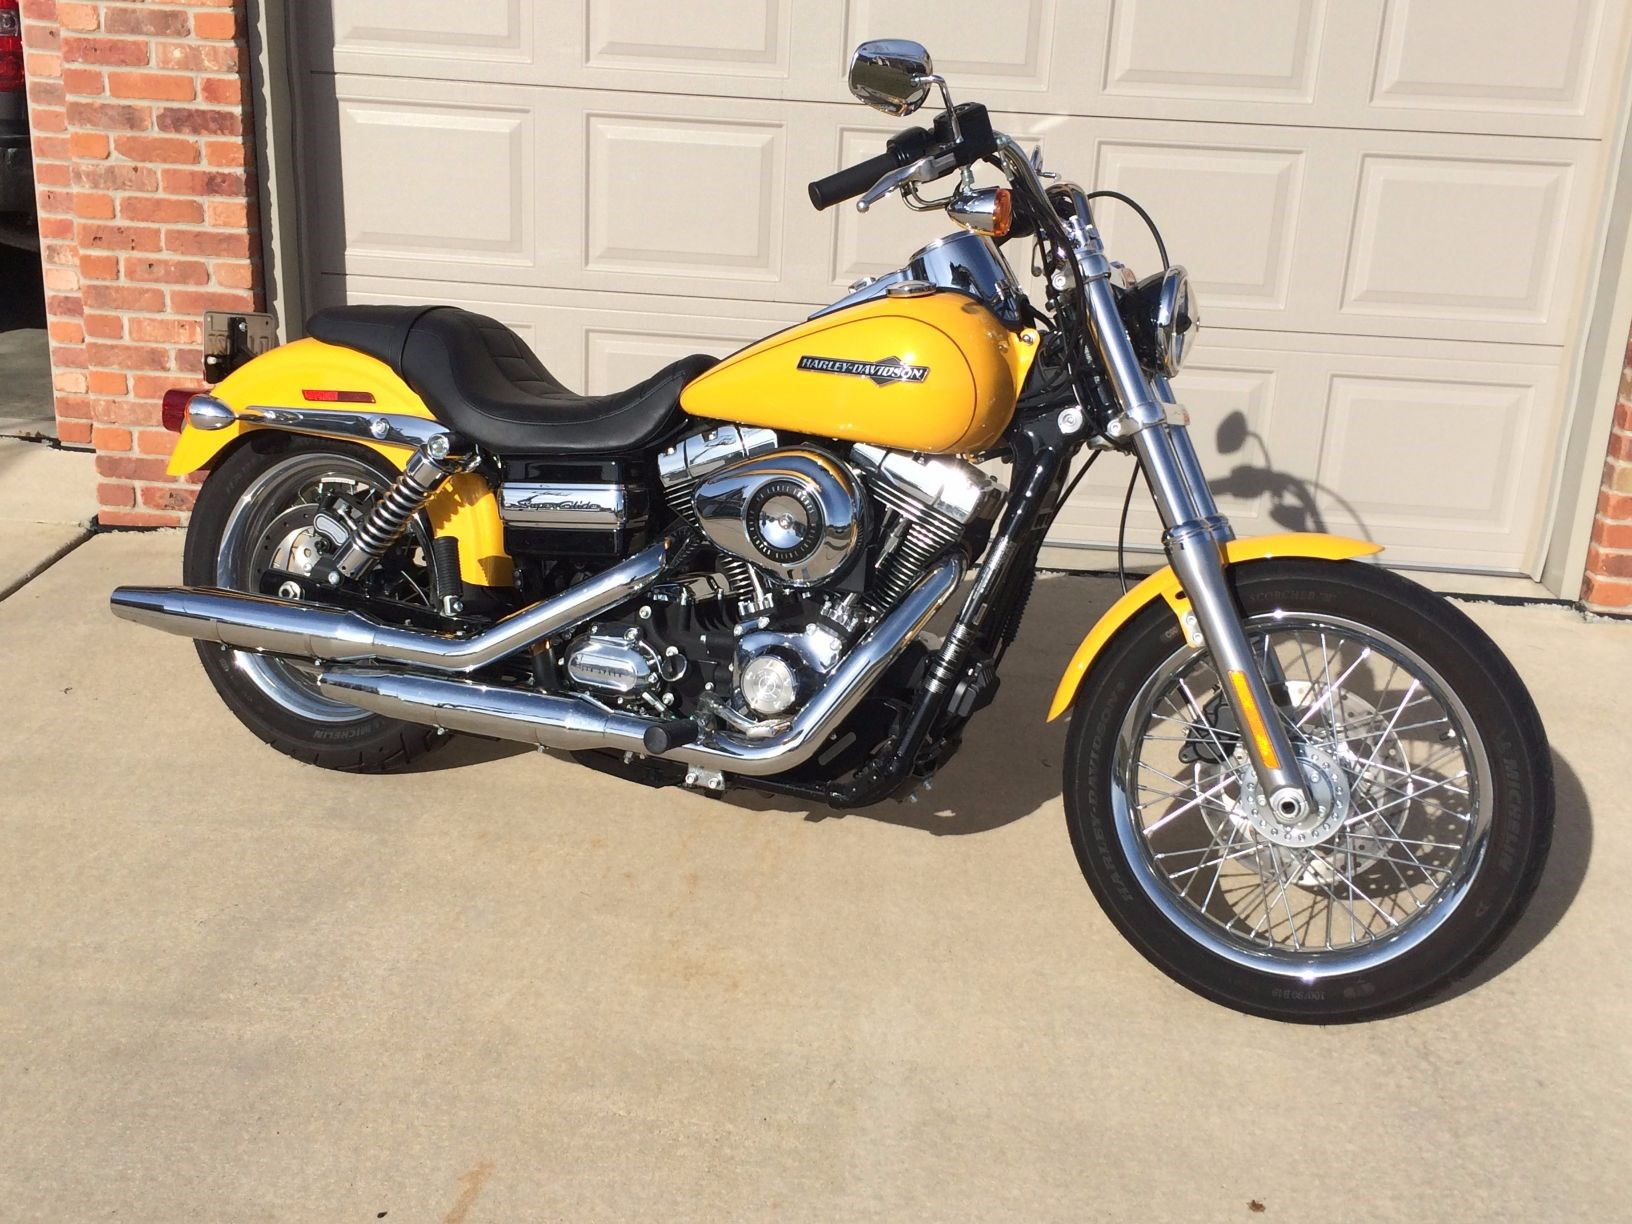 Accident Lawyers Info Fxdc Dyna Super Glide Custom: 2013 Harley-Davidson® FXDC Dyna® Super Glide® Custom